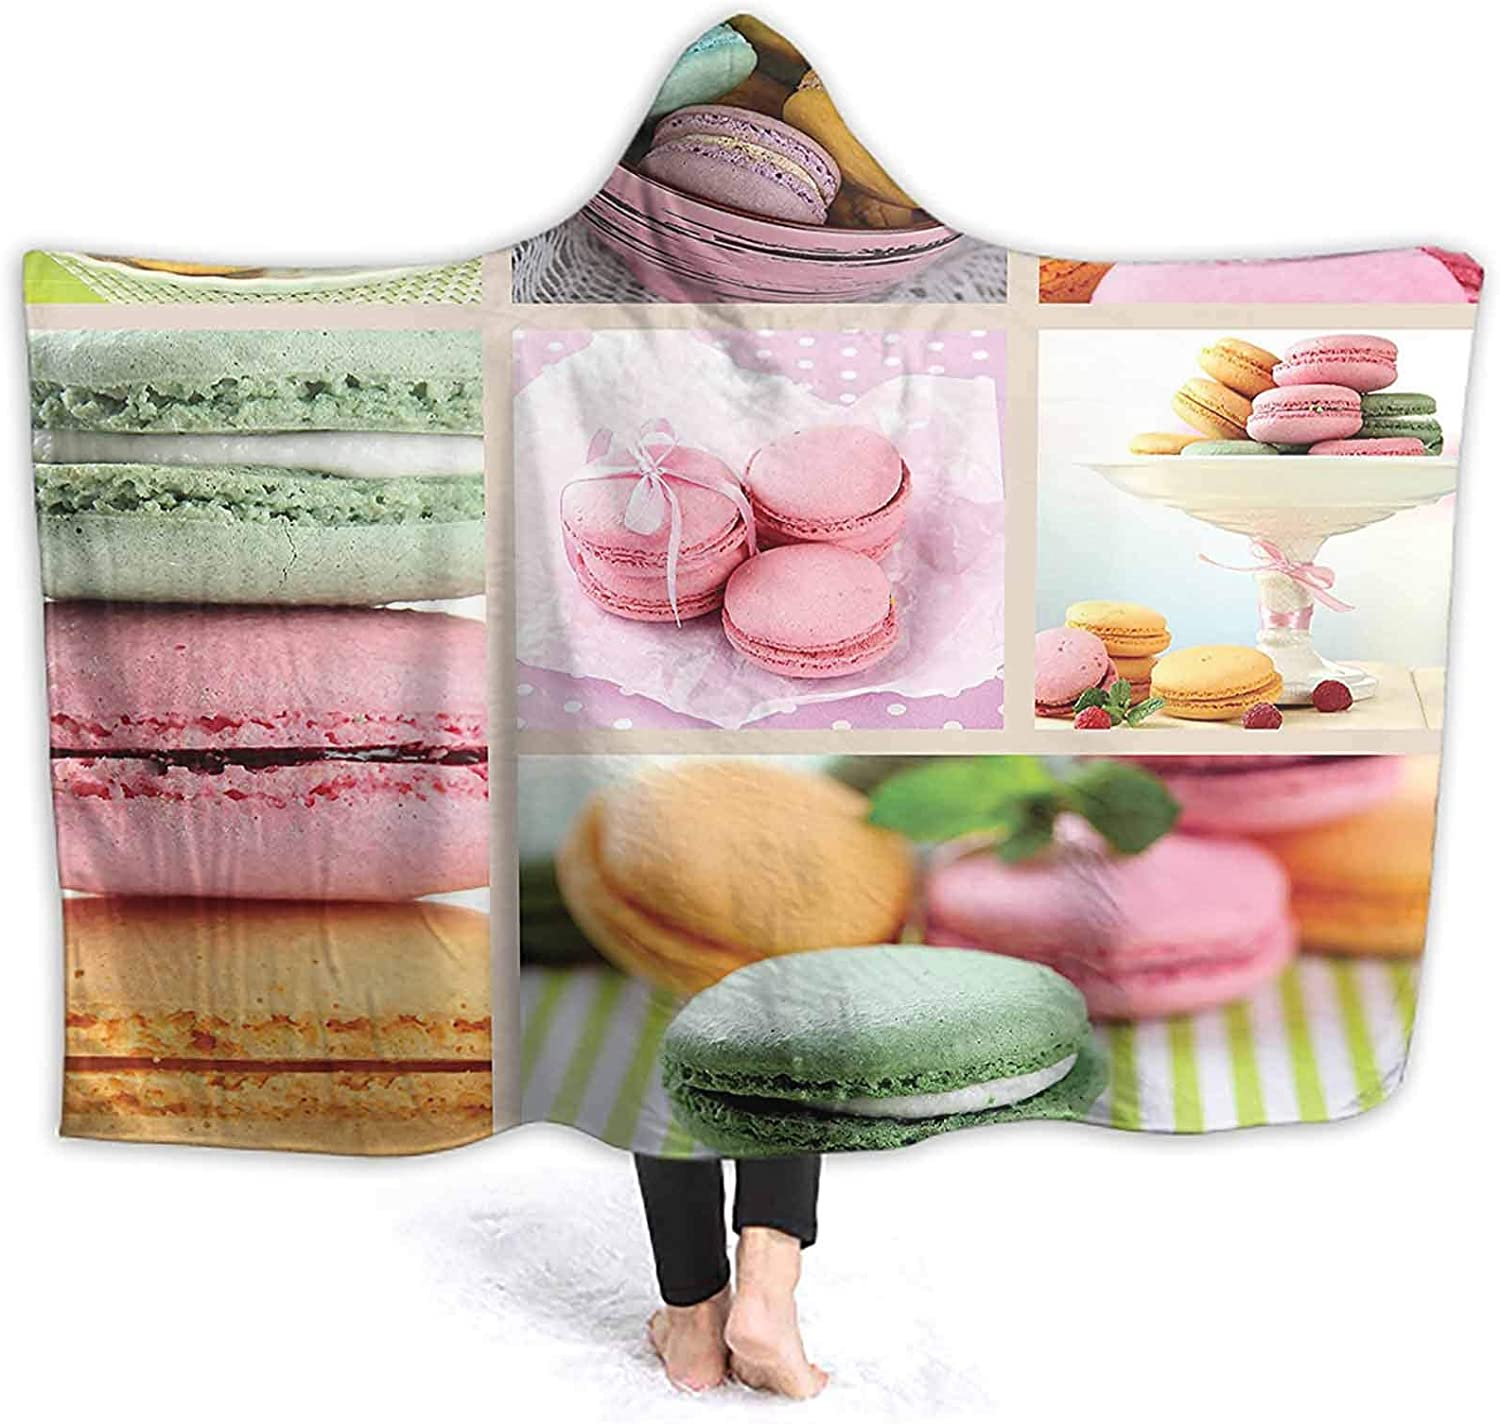 ThinkingPower Hooded Blanket ERT Macaro Themed Collage fee Gourmet Sweet Print Multicolor Premium Fleece Blanket Perfect for Home Office and Watching Tv on Sofa 80 x 60 Inch